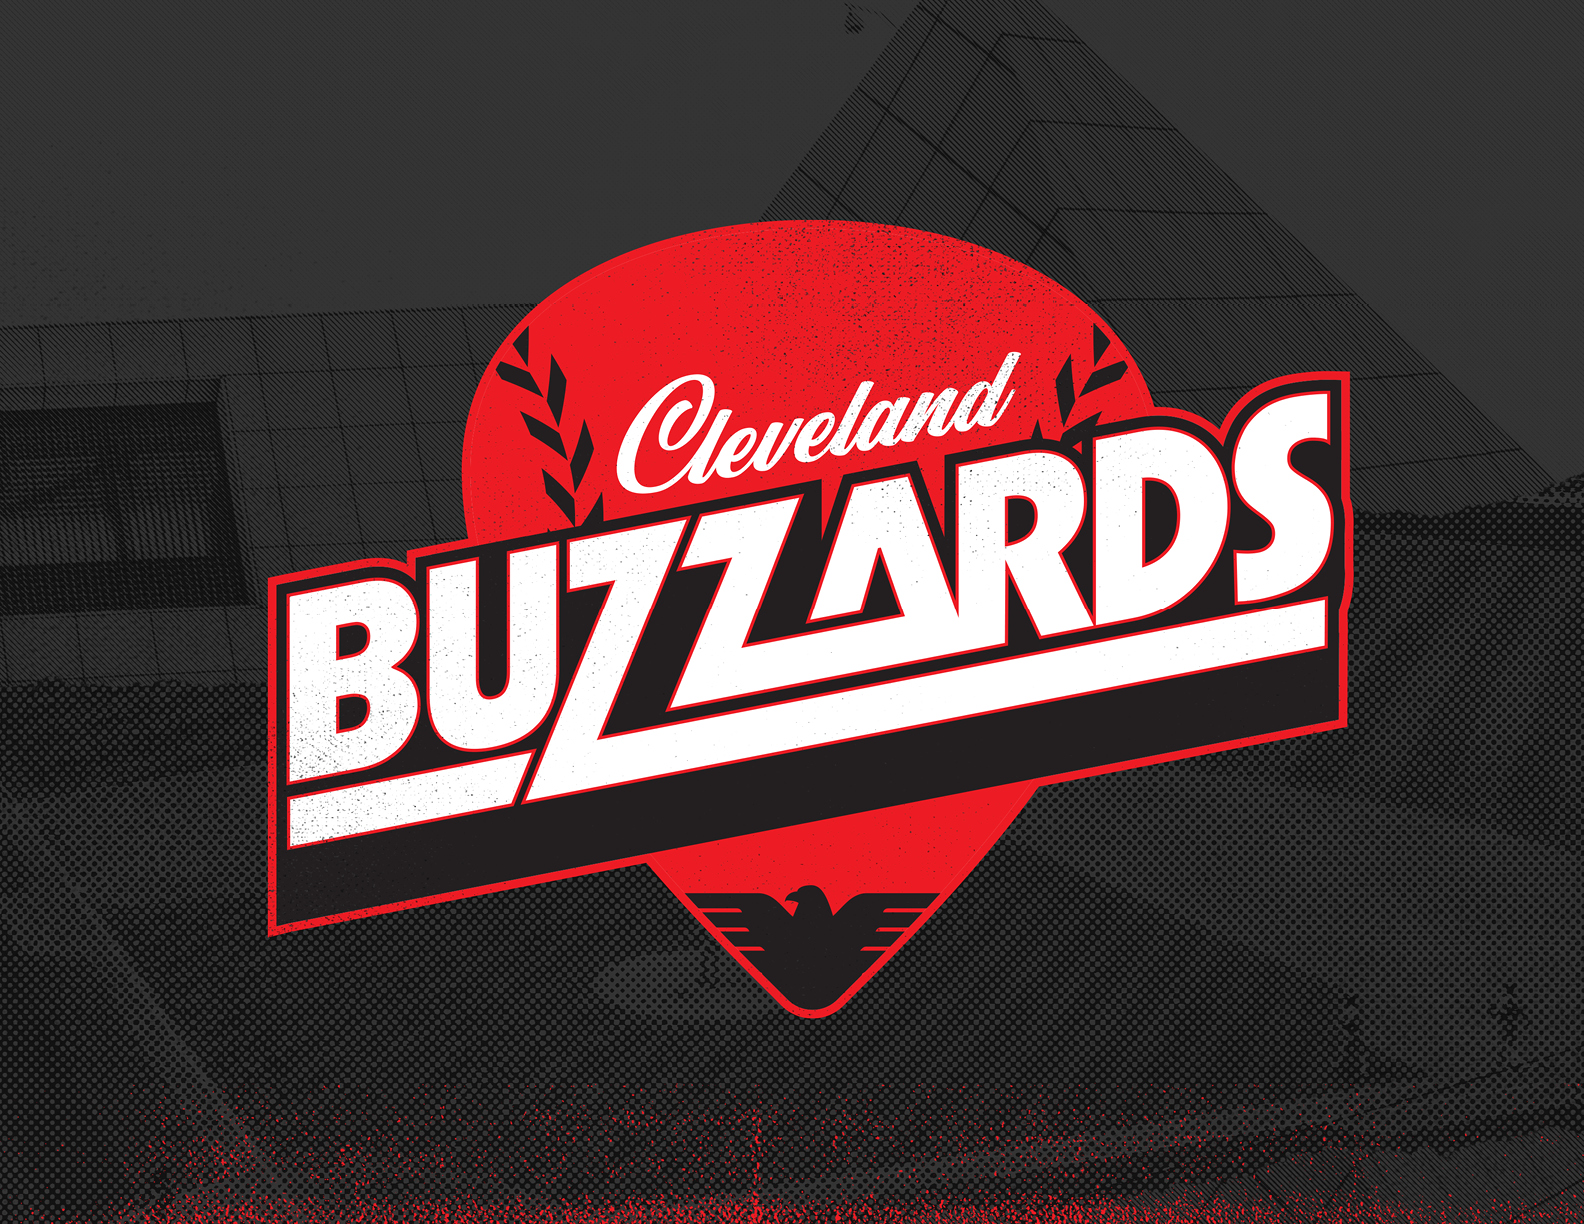 Cleveland Buzzards12.jpg